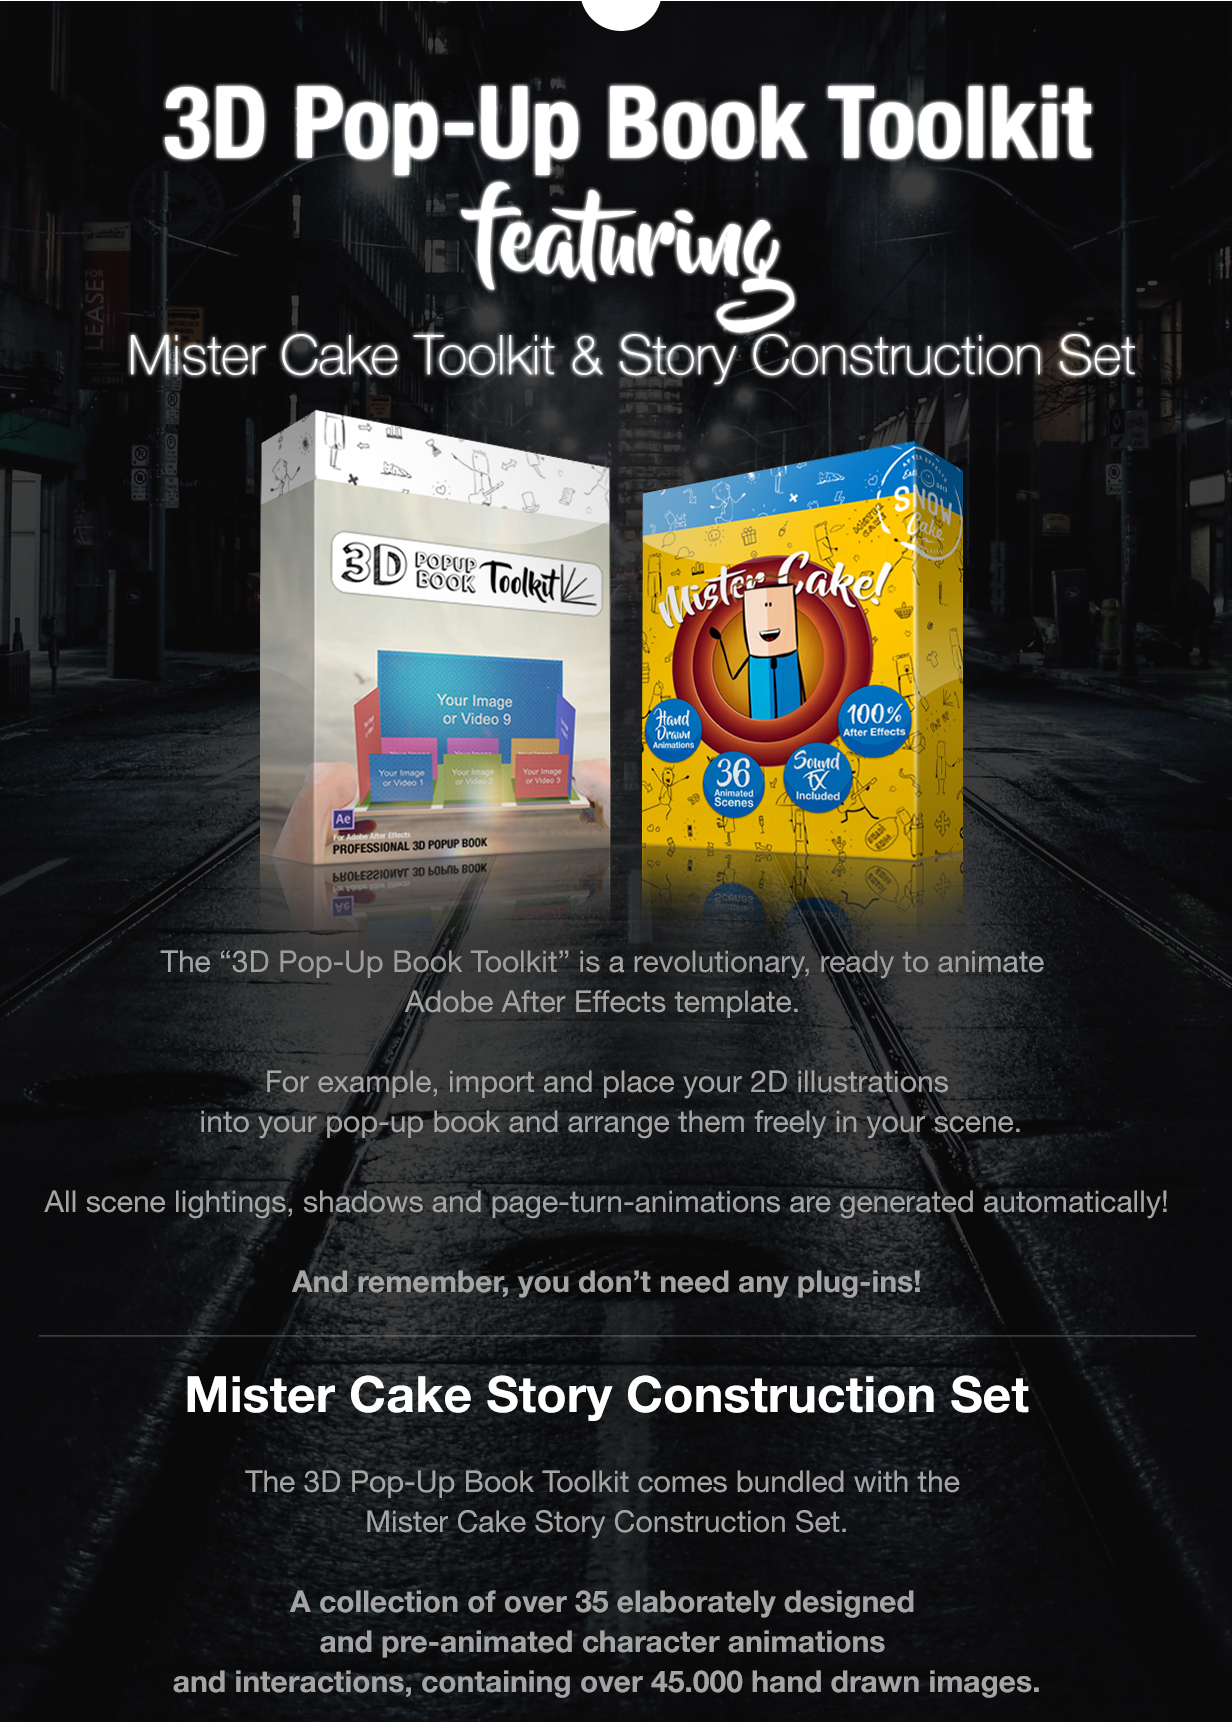 3d pop up book toolkit featuring mister cake toolkit story